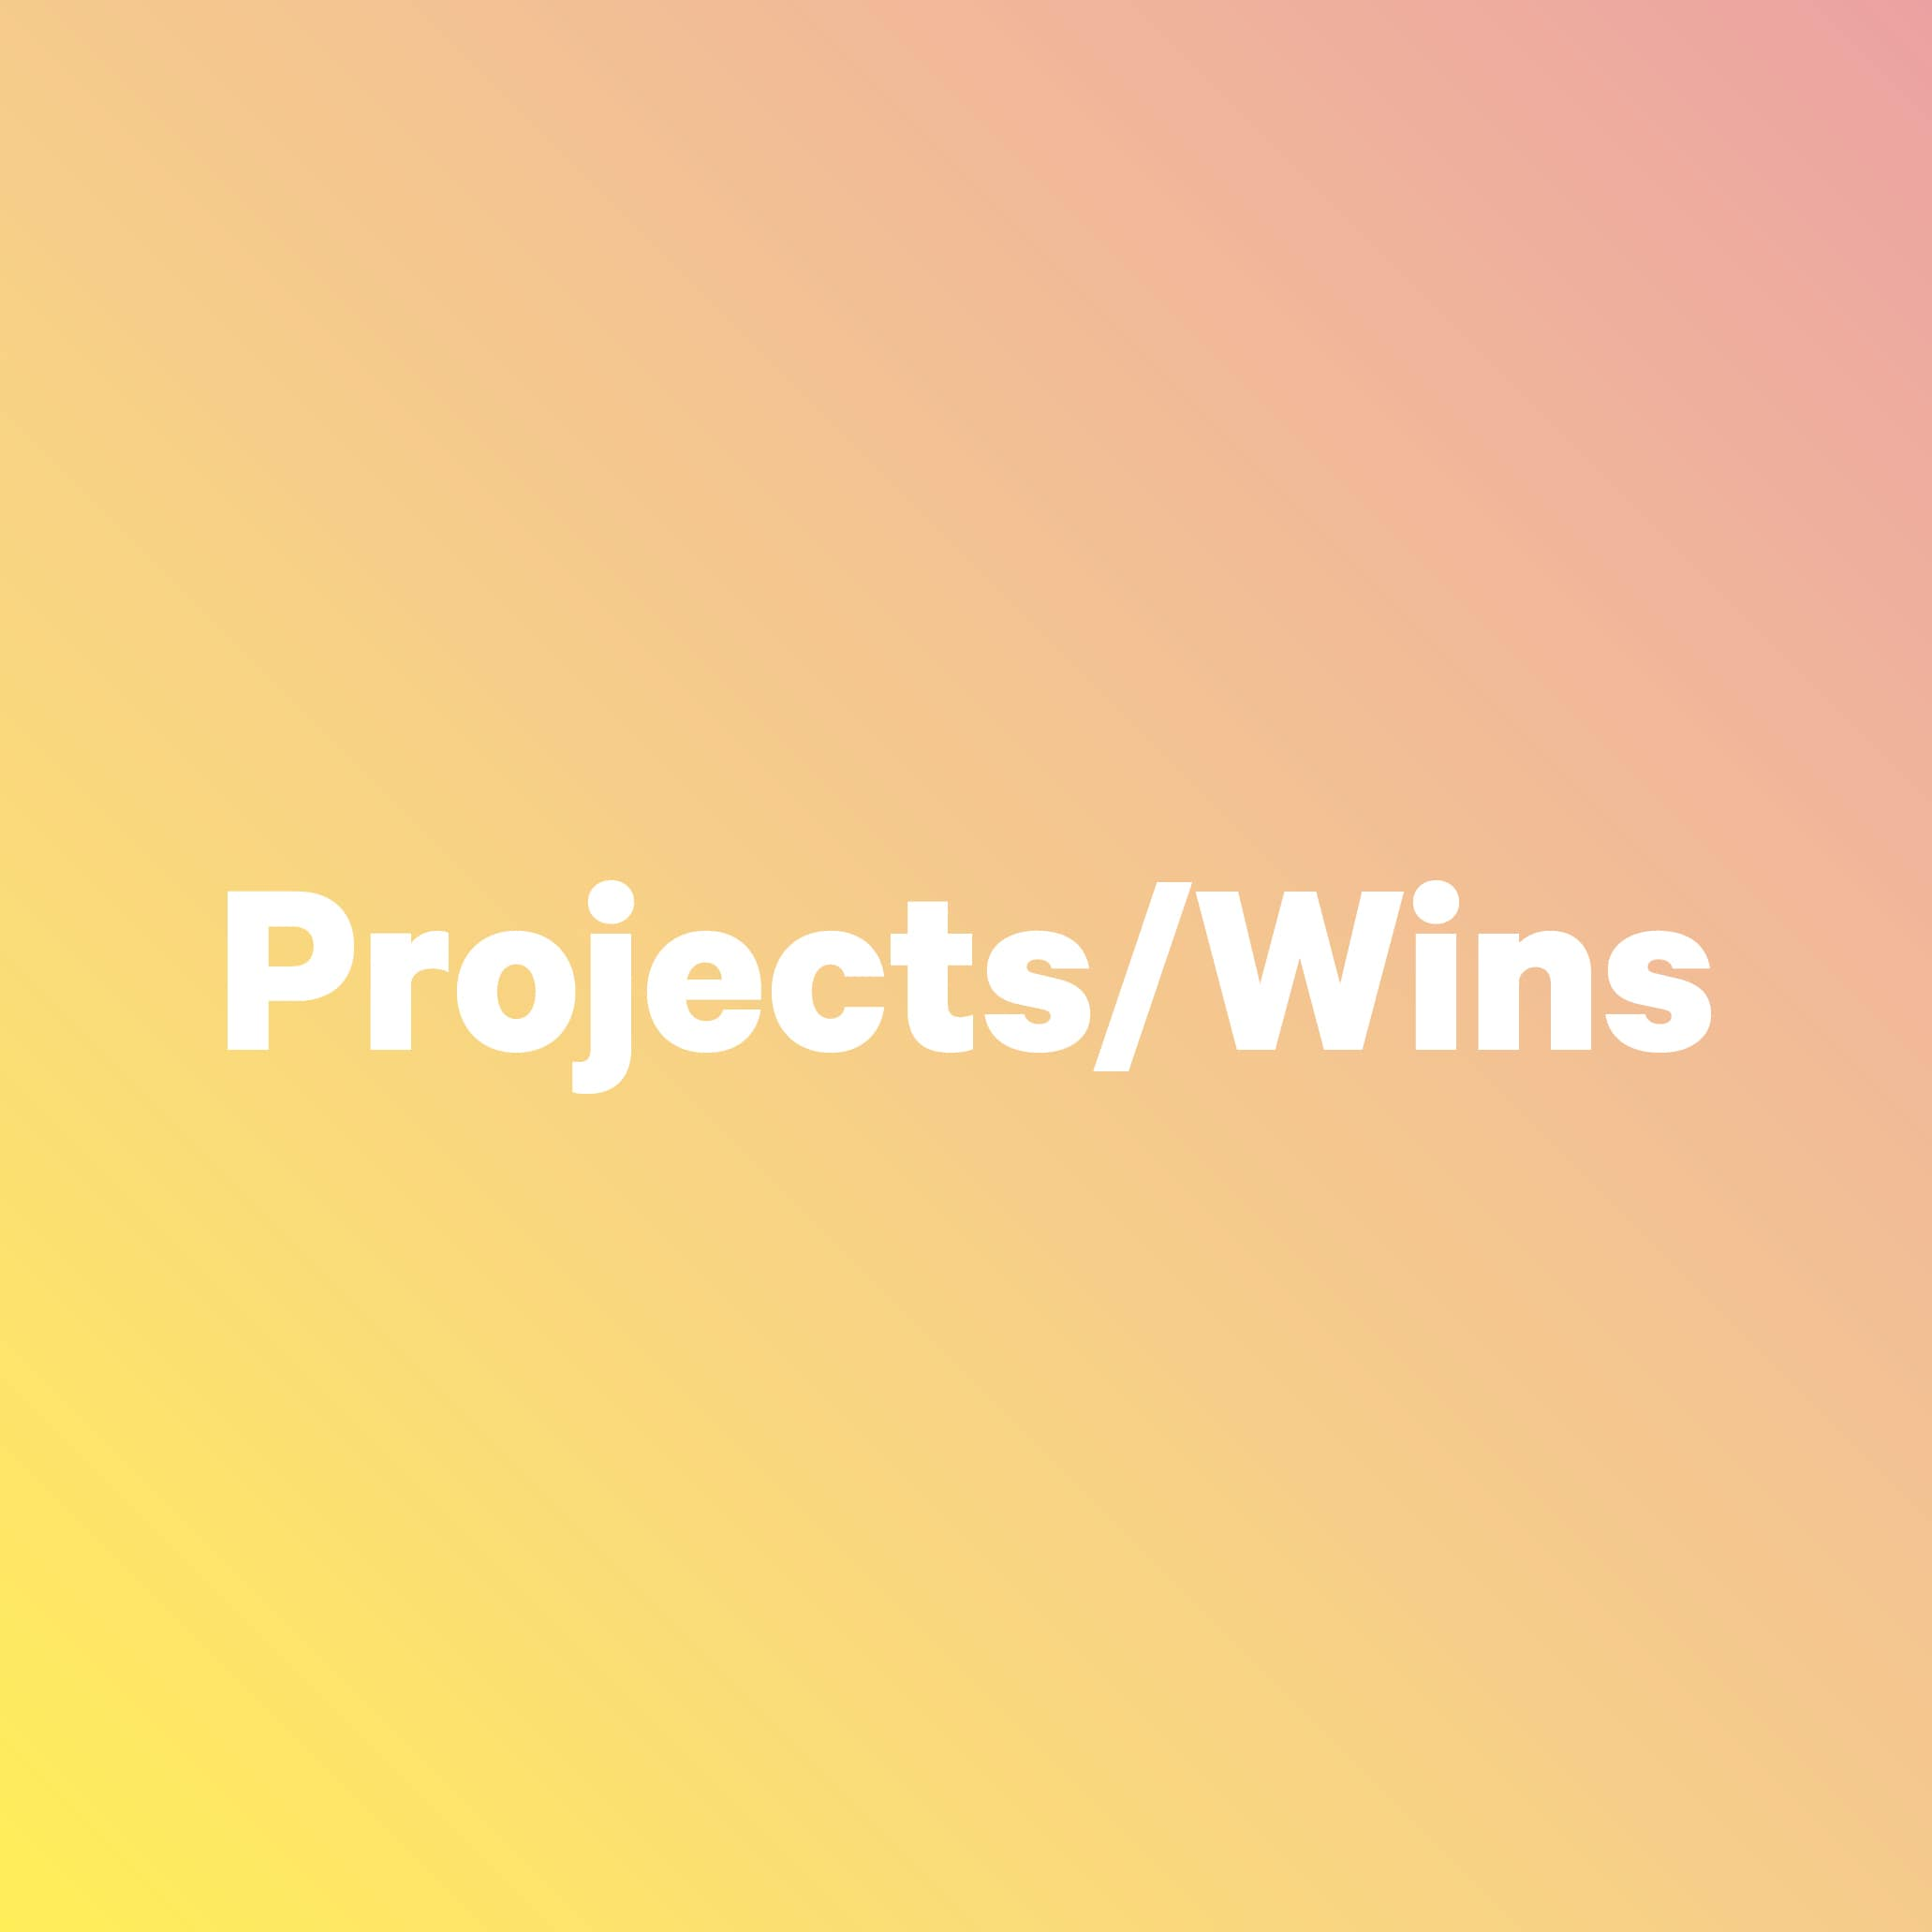 Projects and wins